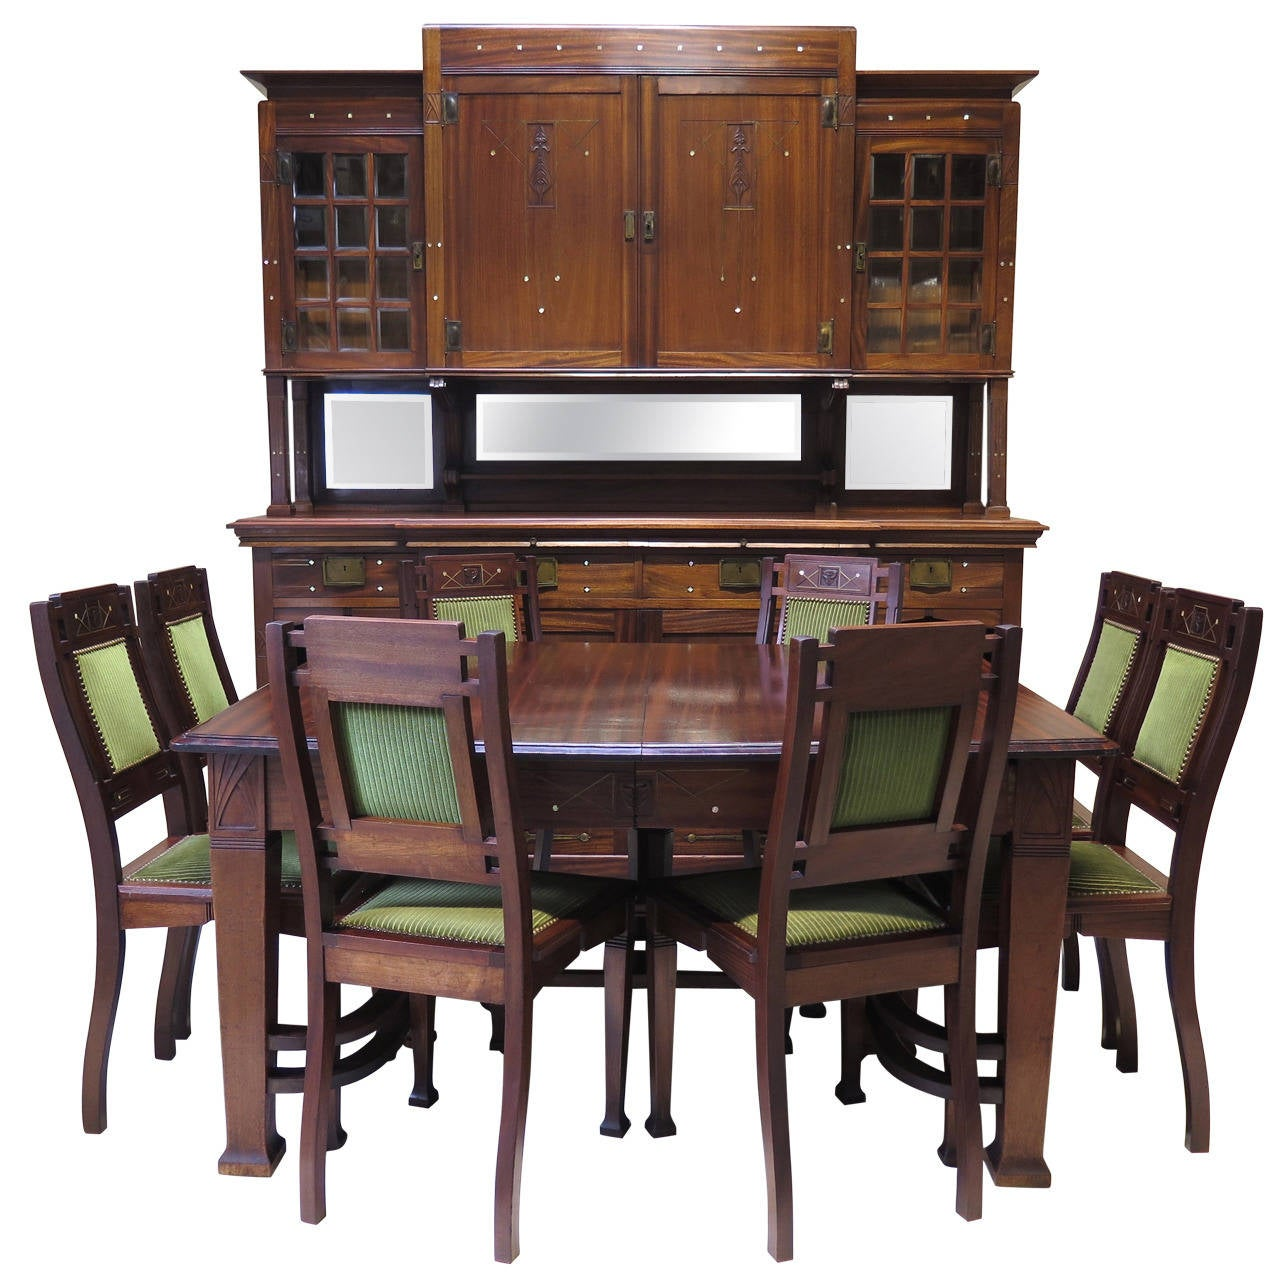 arts and crafts dining room set early 1900s at 1stdibs. Black Bedroom Furniture Sets. Home Design Ideas